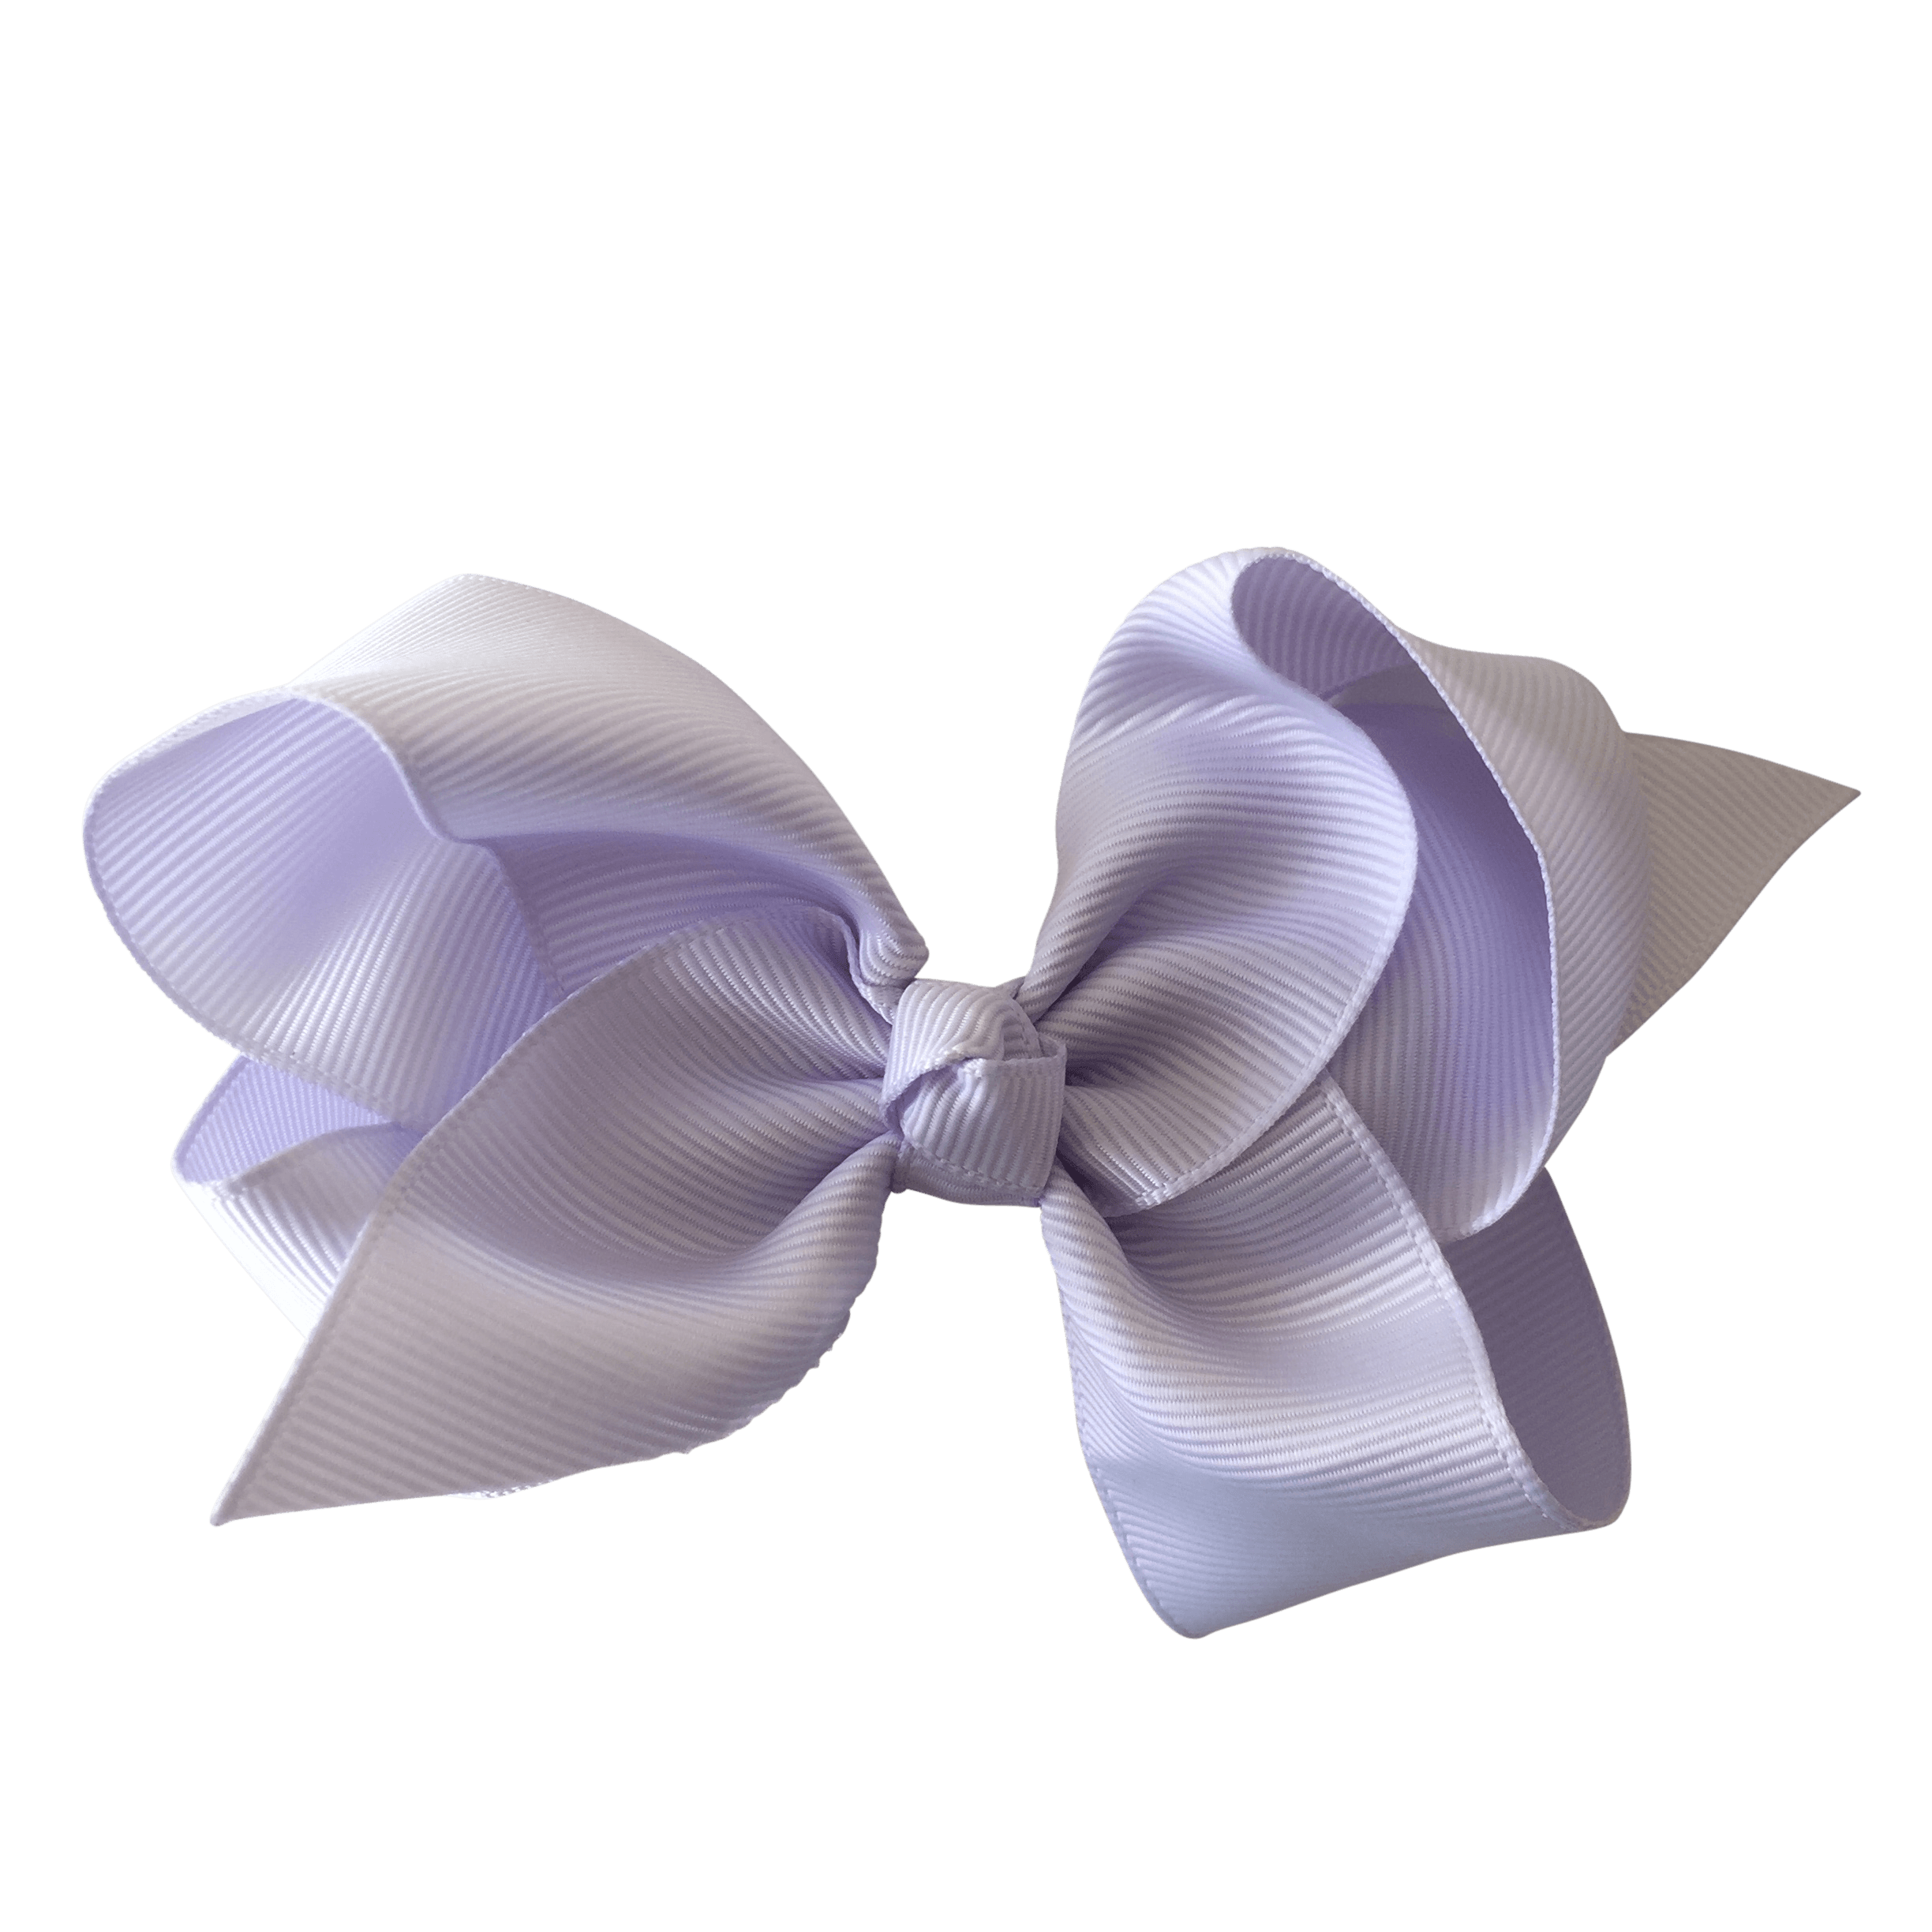 Big Sister / Little Sister Big Bow - Hair clips - School Uniform Hair Accessories - Ponytails and Fairytales